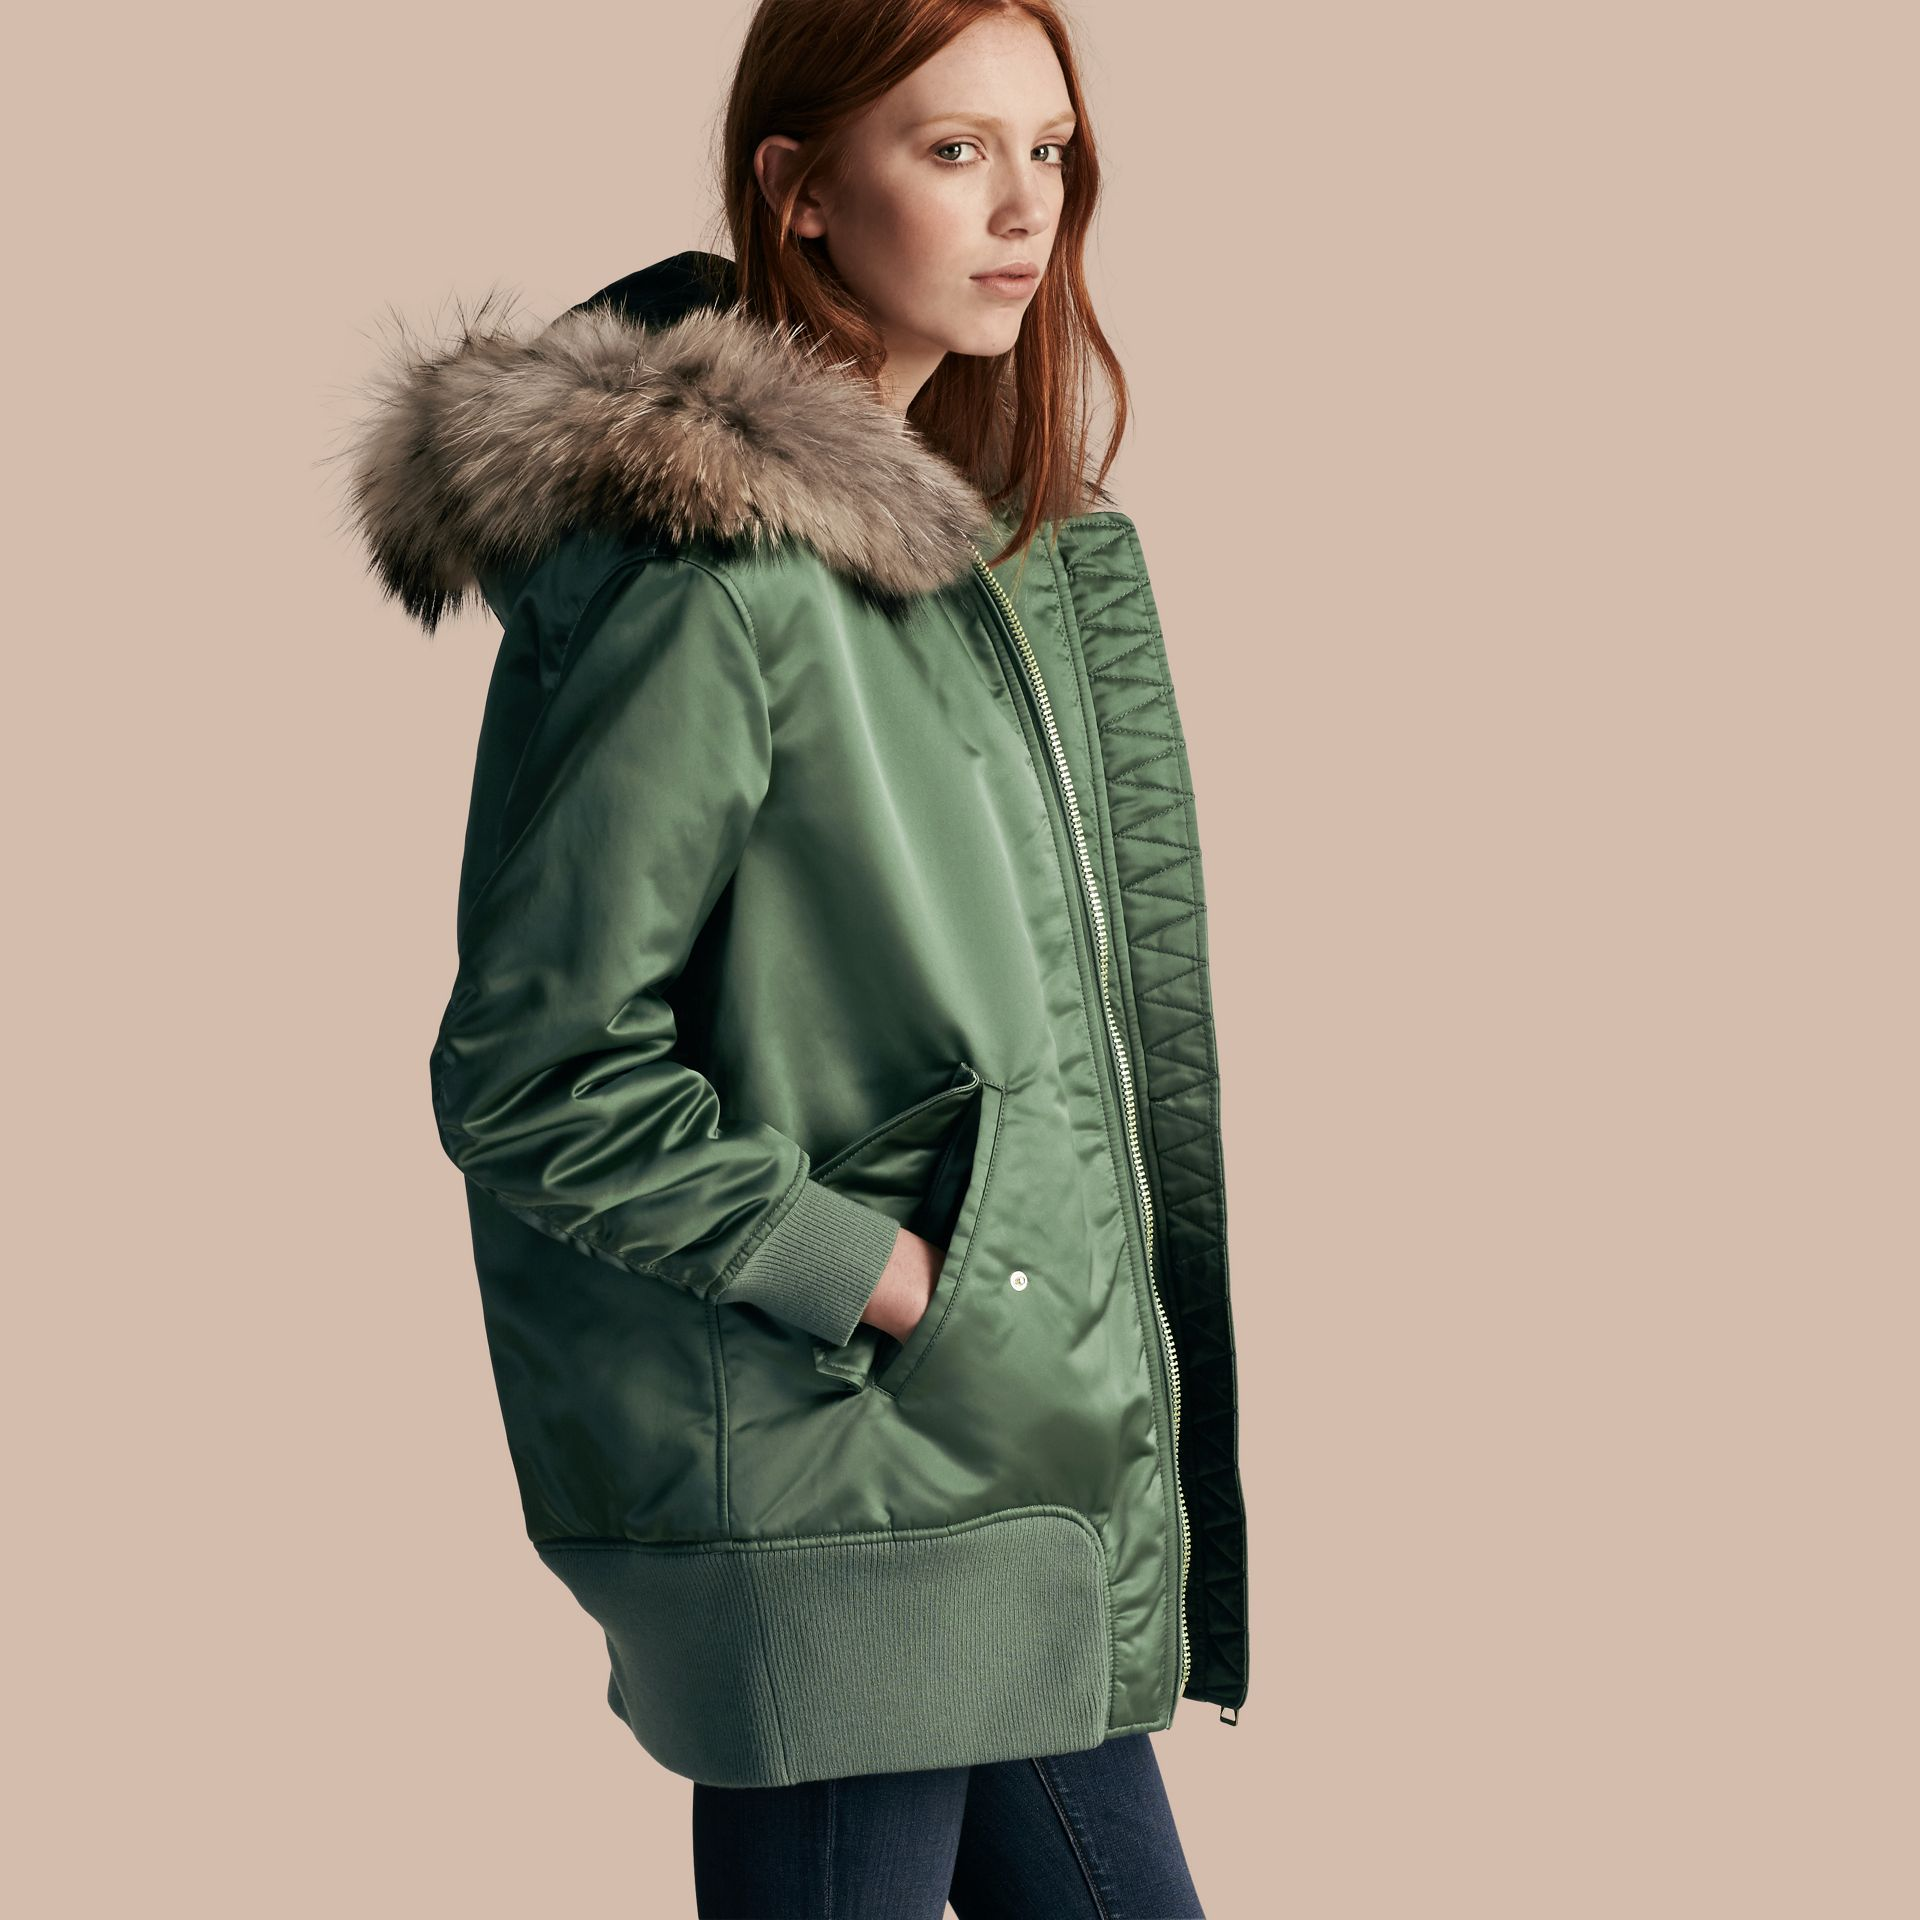 Eucalyptus green Long-line Satin Bomber Jacket with Fur-trimmed Hood Eucalyptus Green - gallery image 1